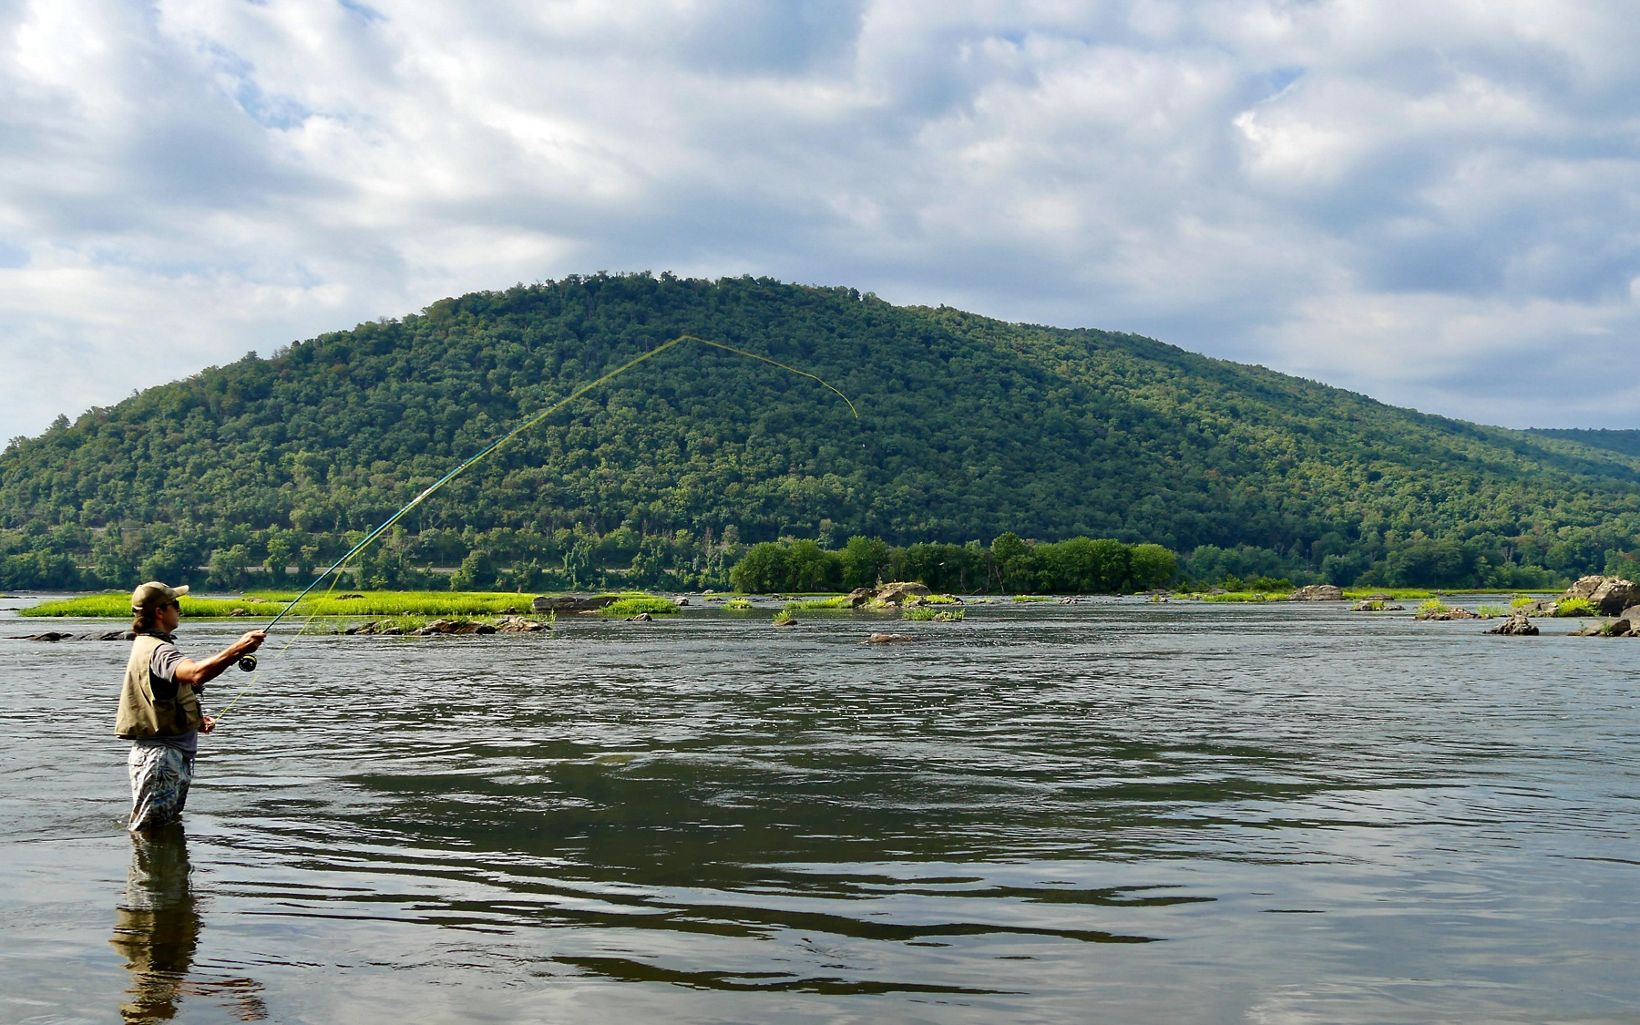 A man wearing waders stands hip deep in the Susquehanna River casting a fishing rod. The green forested Cove Mountain rises behind him under low white clouds.